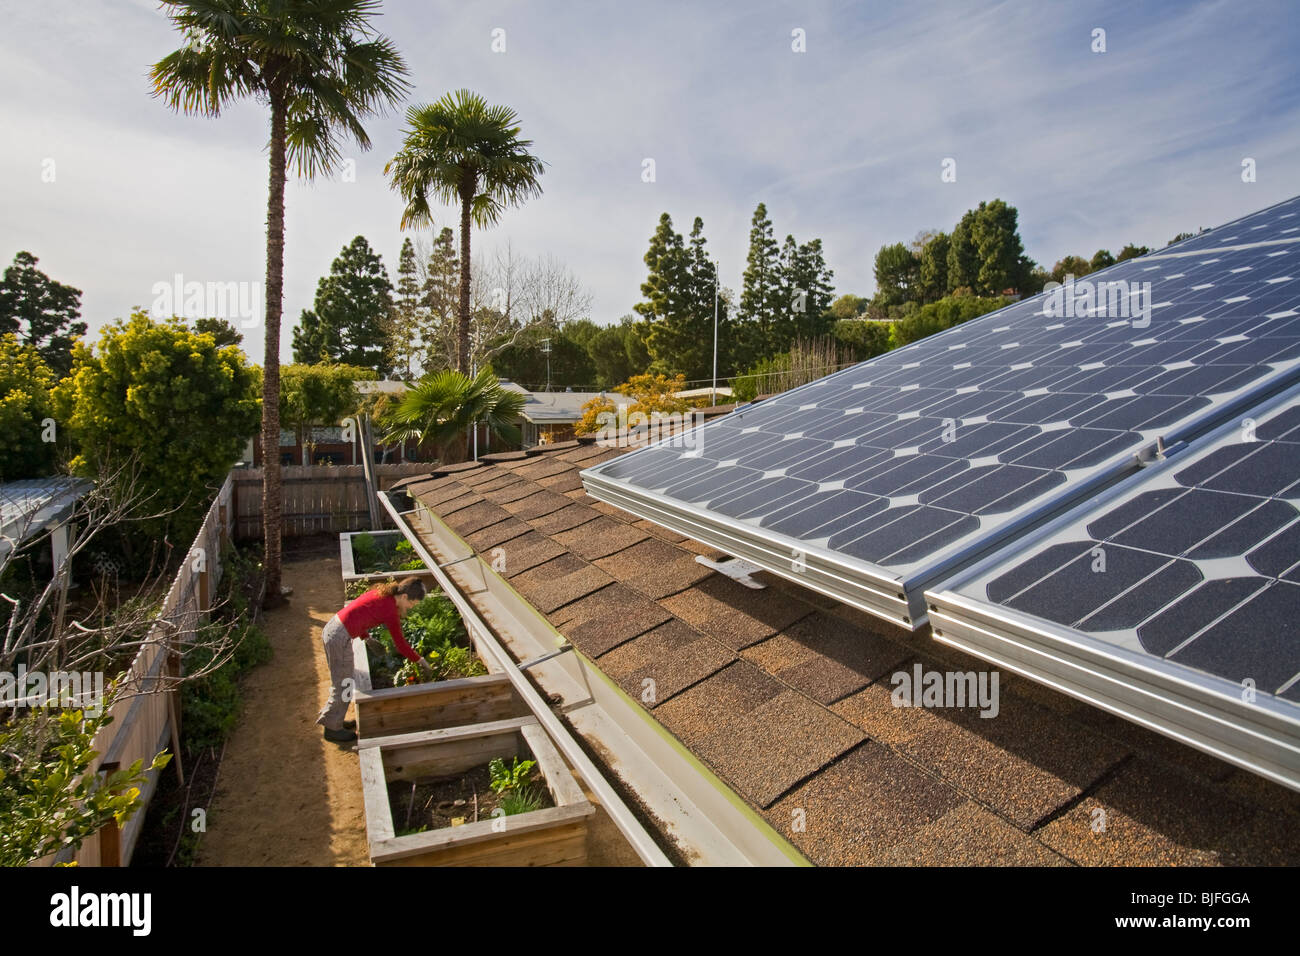 Solar Array on roof of house. Urban garden encircles house in Rancho Palos Verdes. Los Angeles County - Stock Image